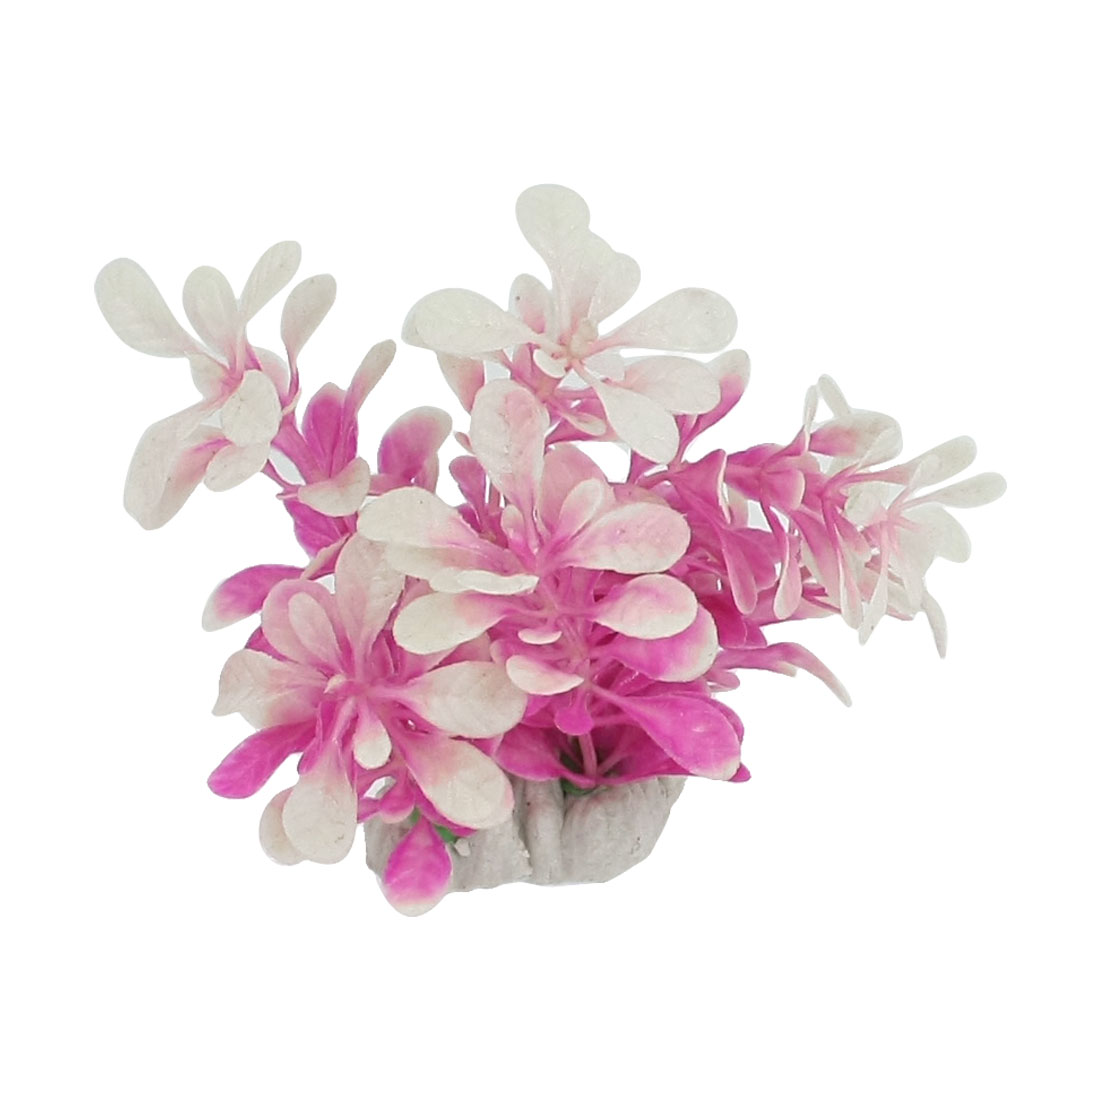 9cm-Height-Plastic-Artificial-Underwater-Plants-for-Fish-Tank-Fuchsia-White